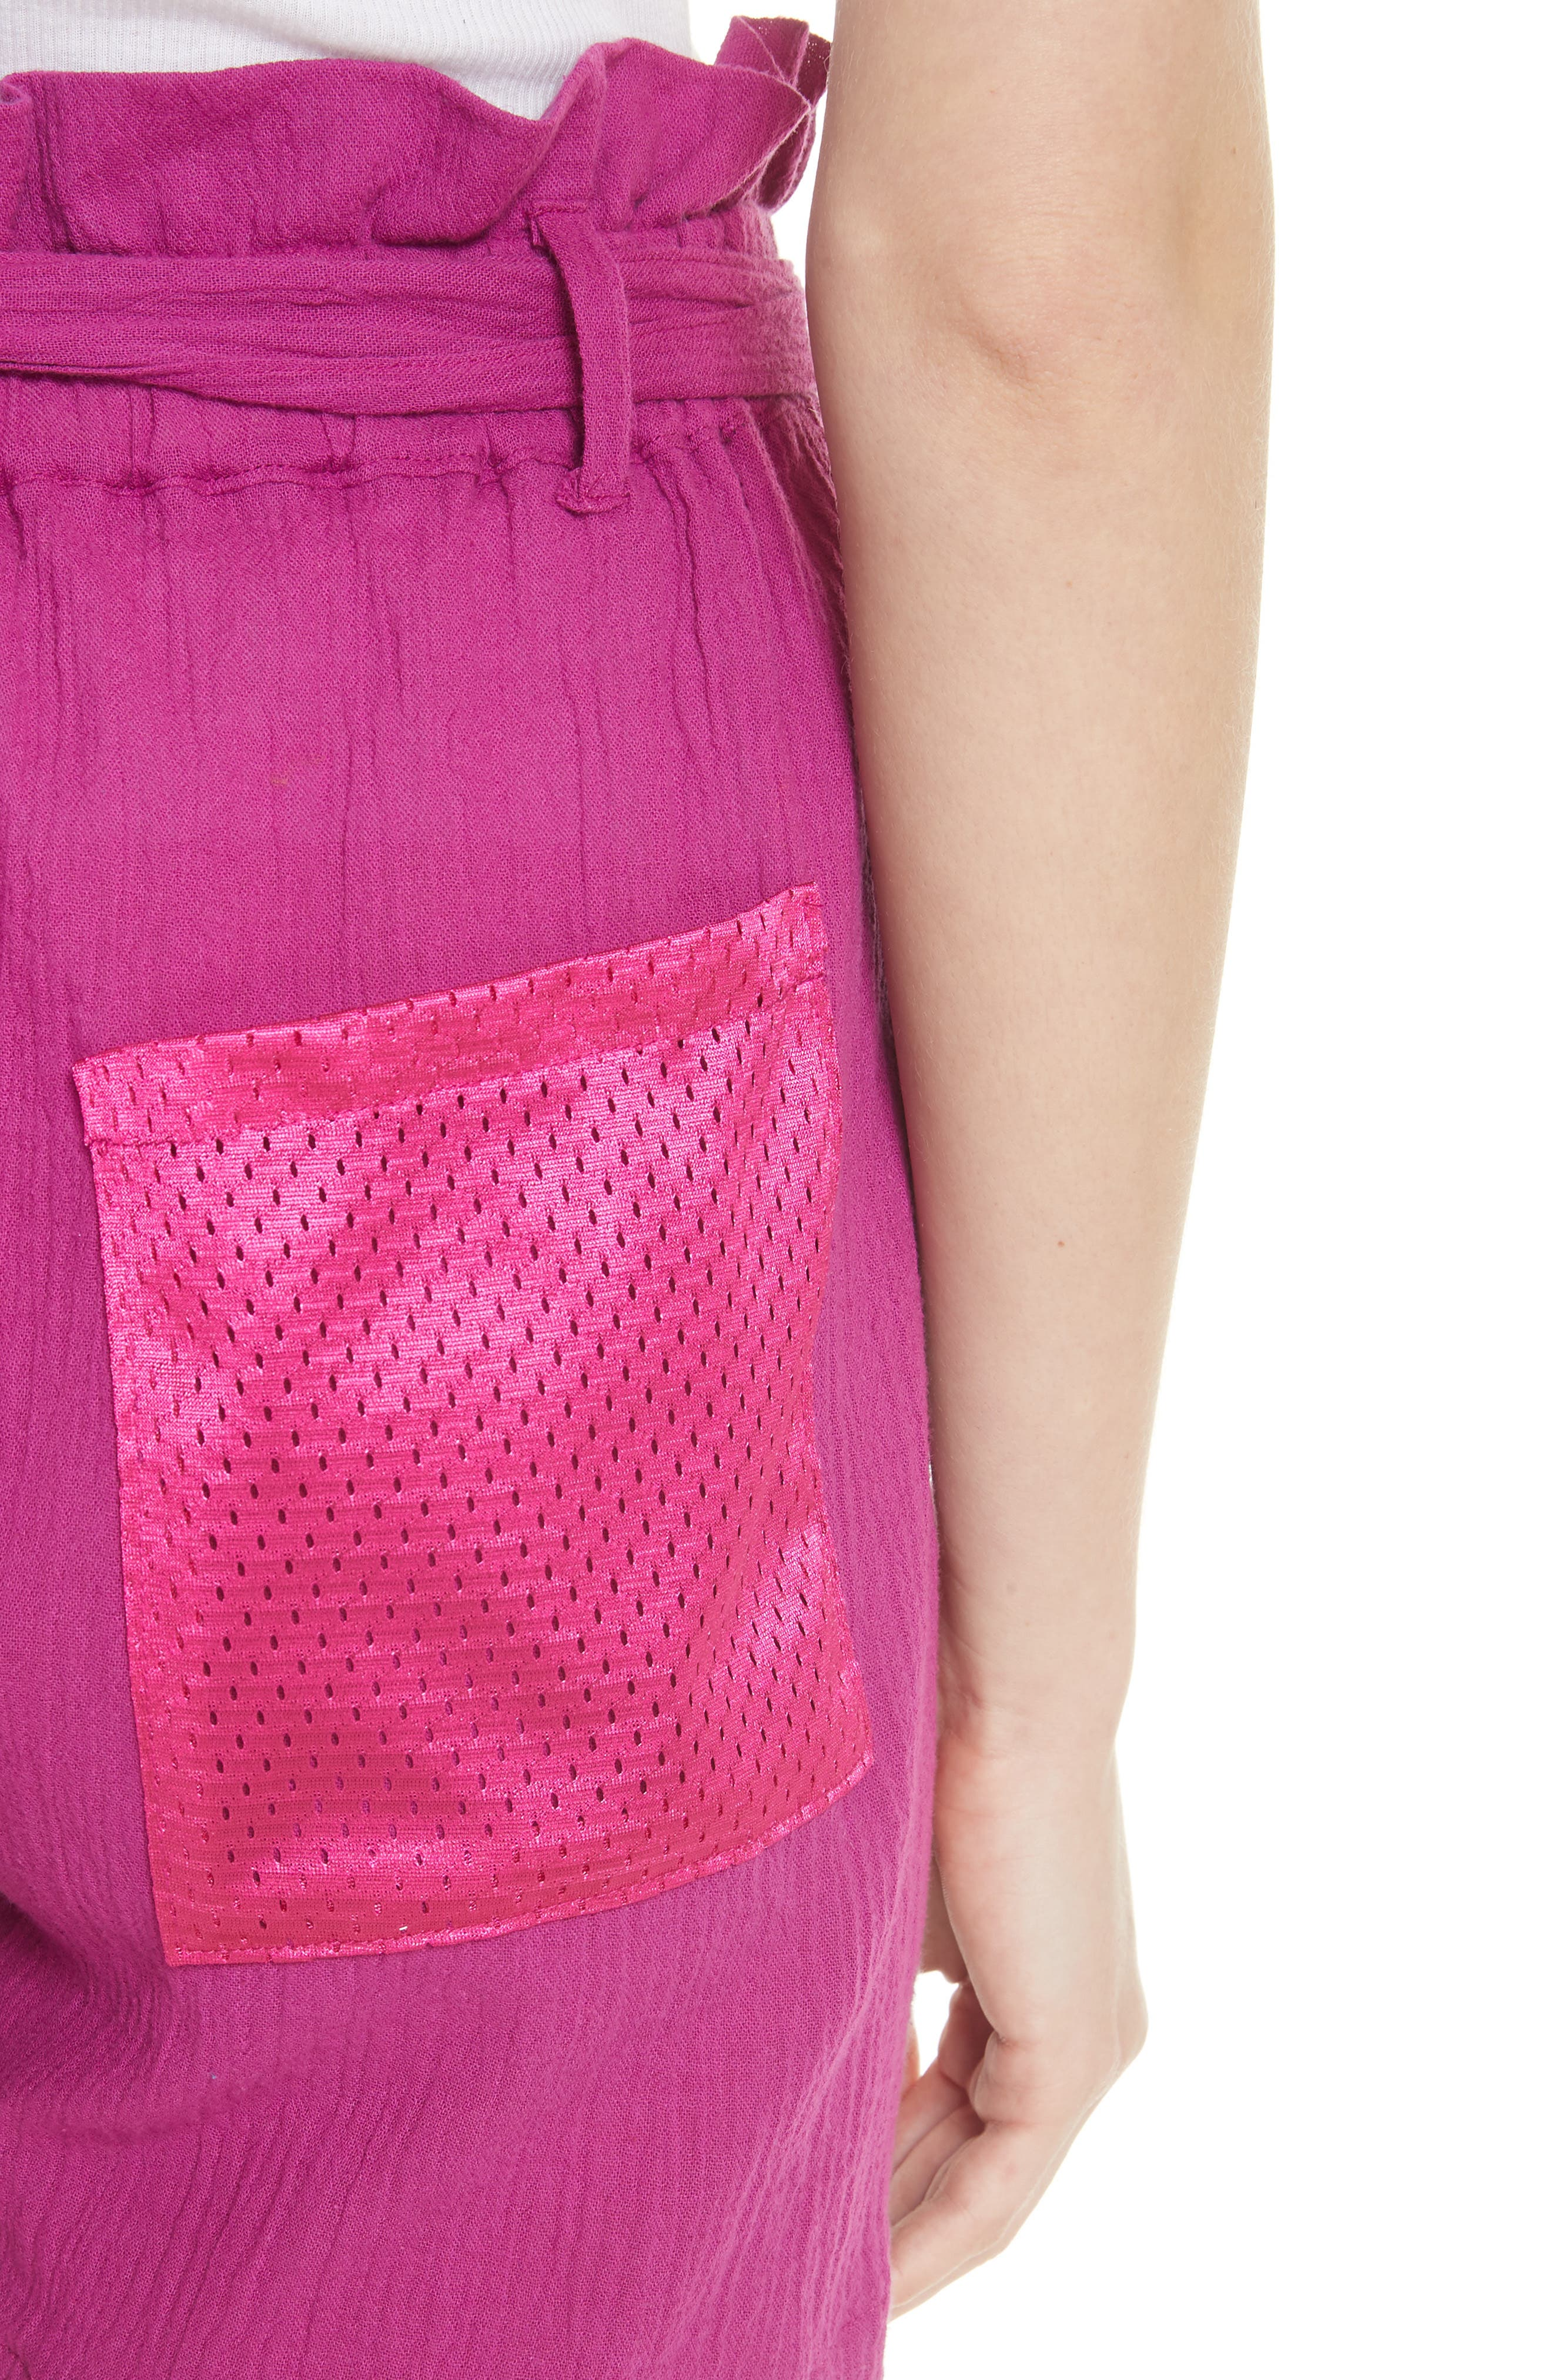 Island Mesh Pocket Shorts,                             Alternate thumbnail 5, color,                             MAGENTA